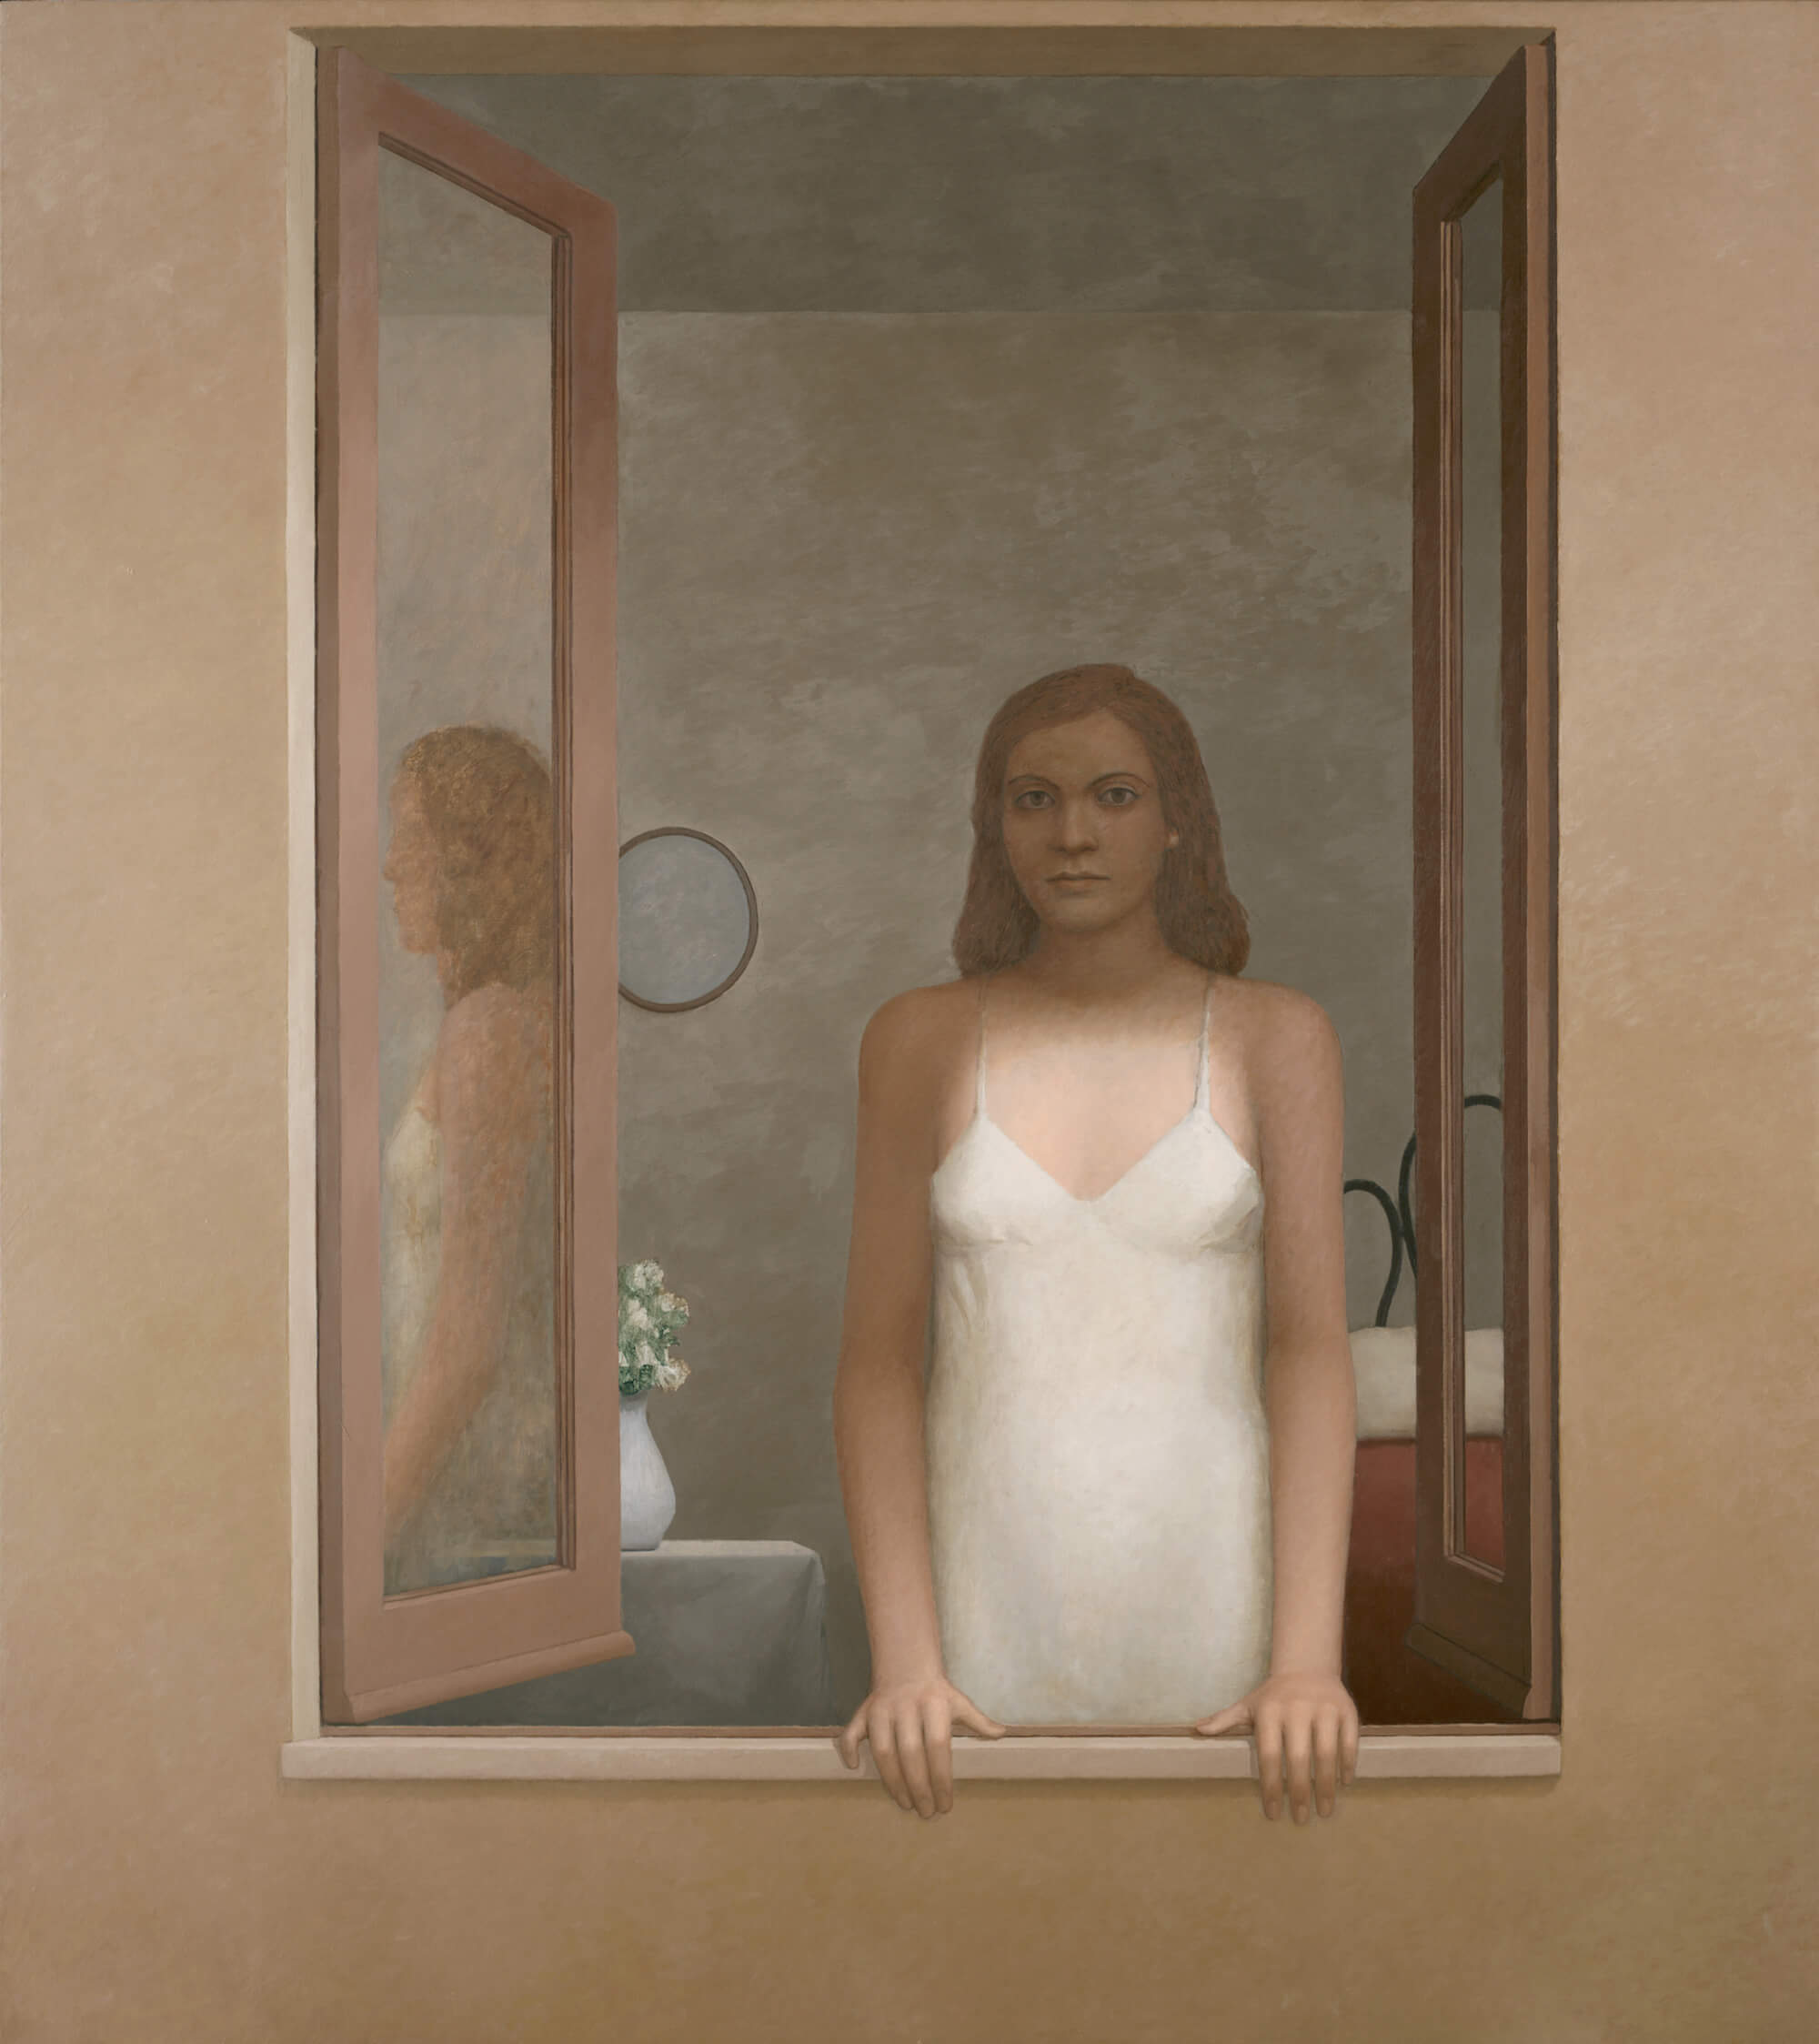 William Bailey, L'Attesa, 2006, oil on linen, 75 x 67 inches (courtesy of the artist and Betty Cuningham Gallery)